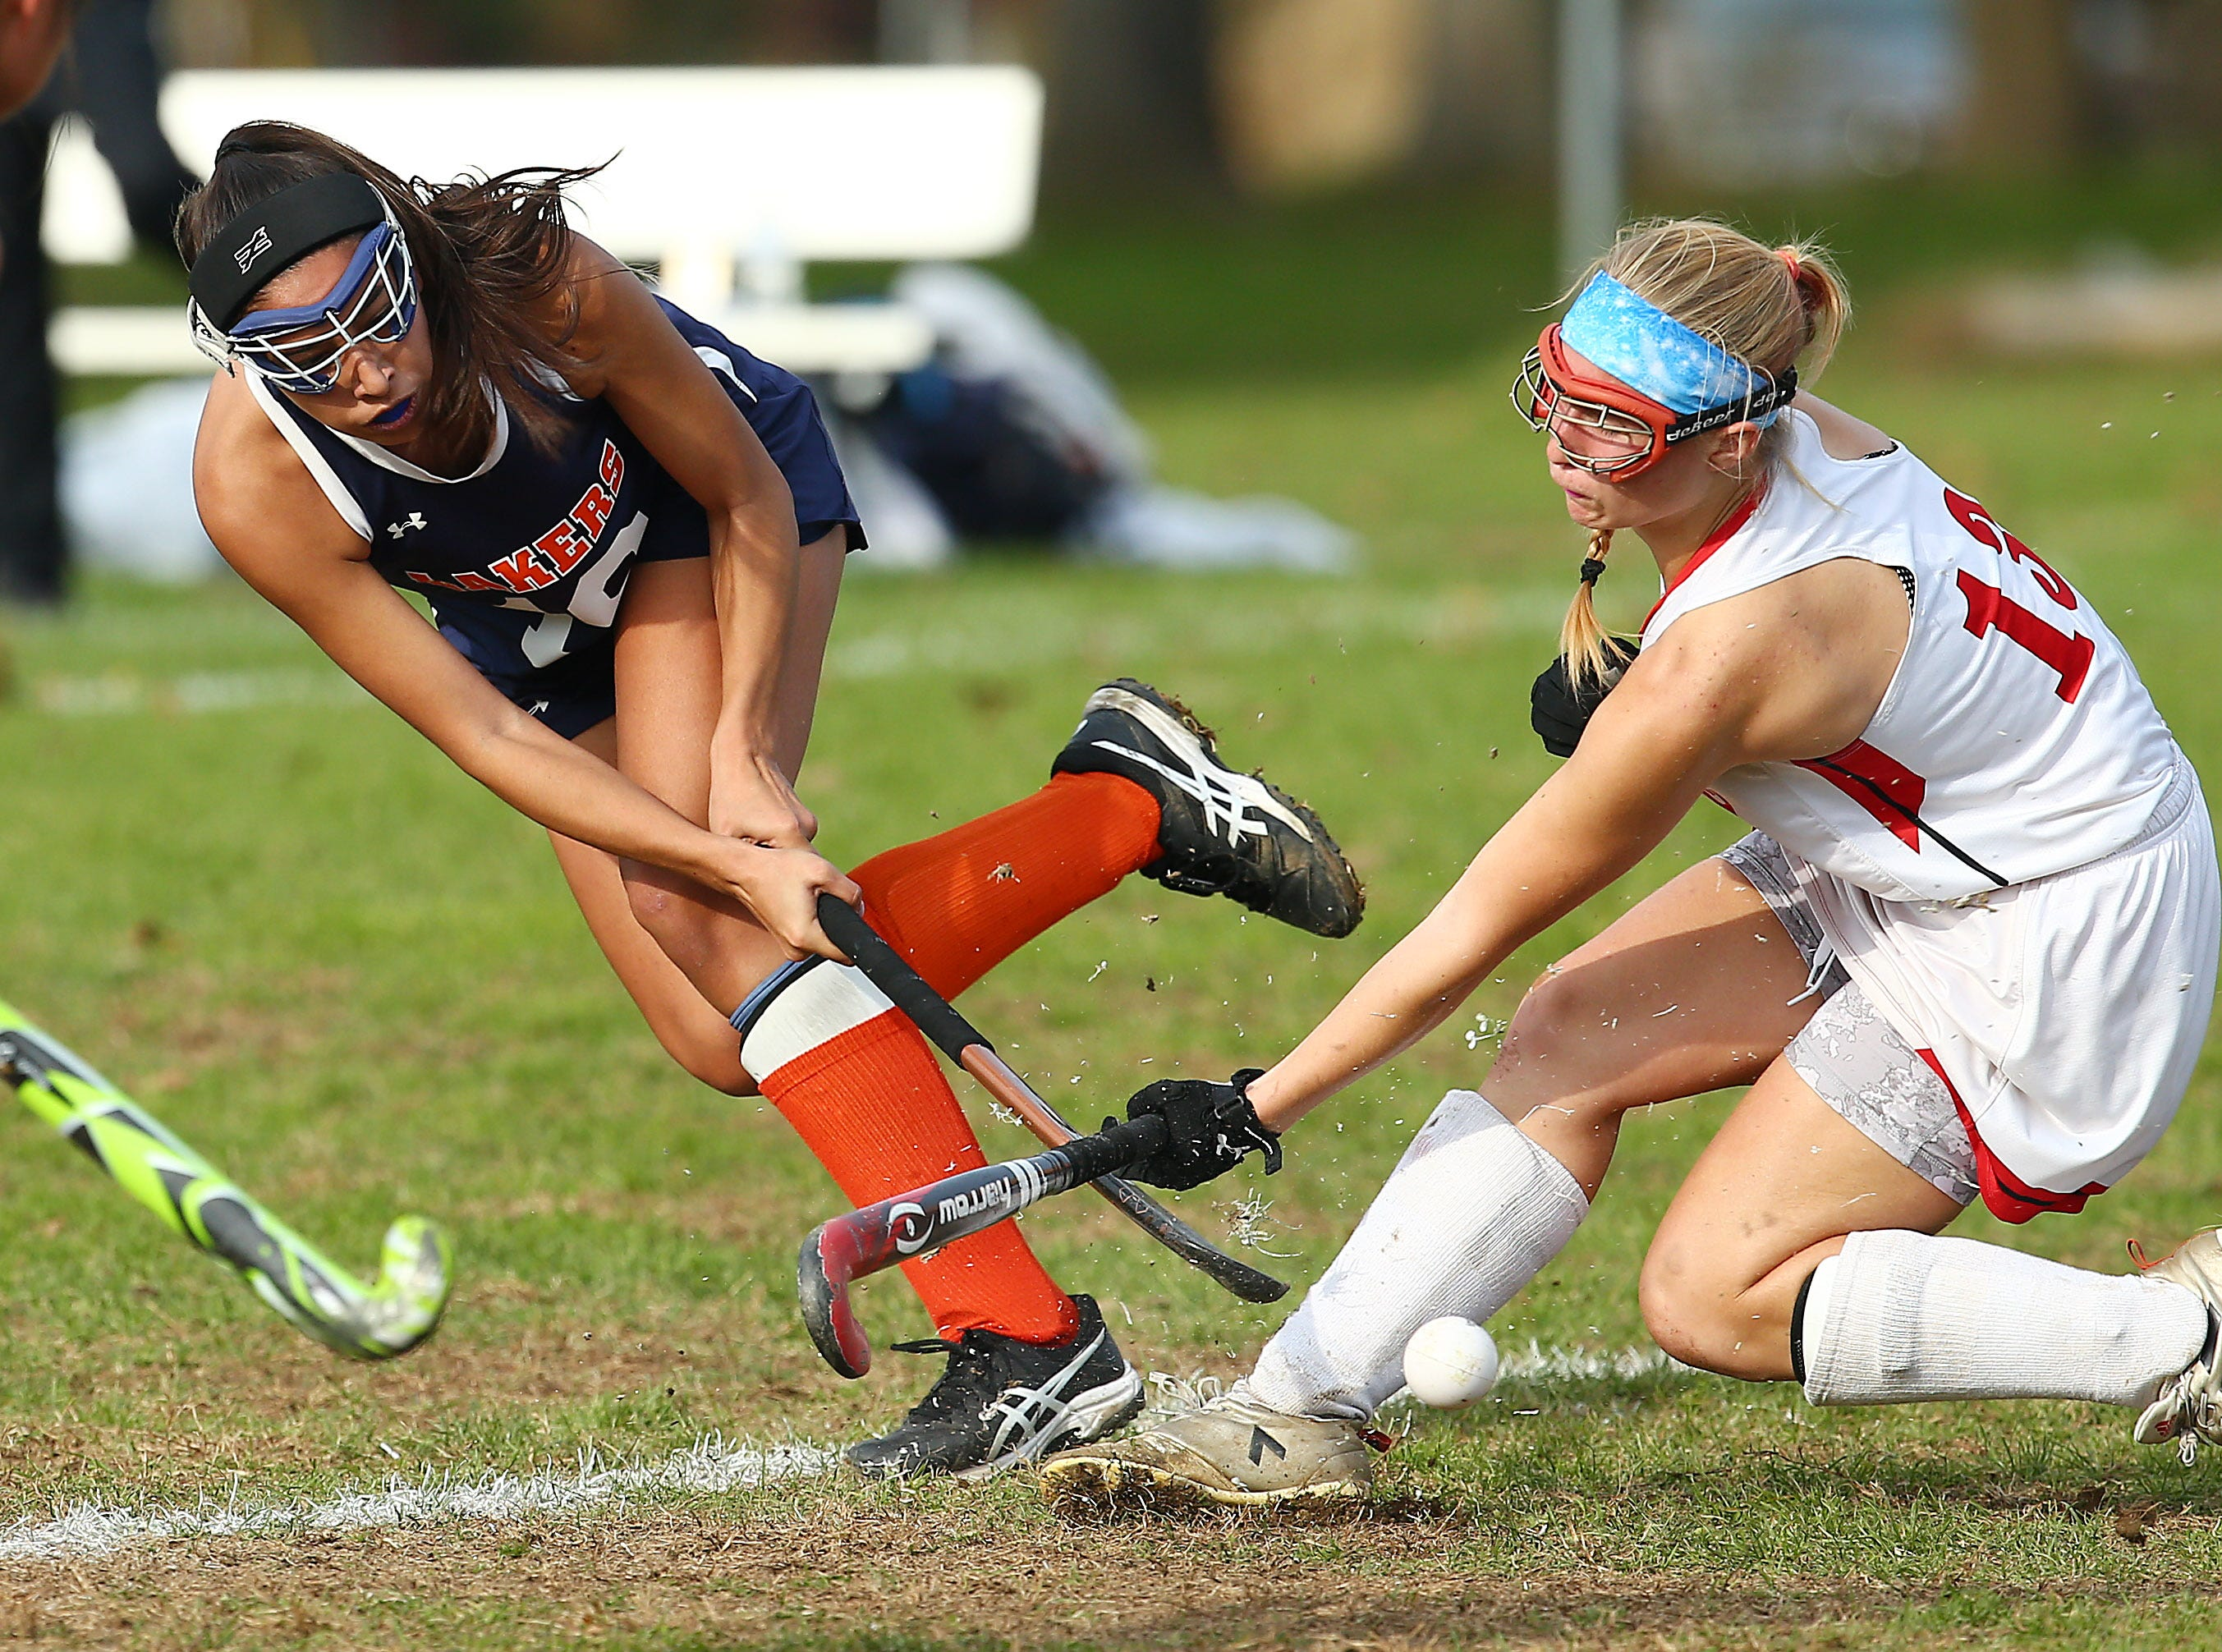 Mountain Lakes Macara Desai takes a shot on goal at Belvidere's Melanie Clark defends during their NJSIAA North 1 Group I field hockey semifinal. October 31, 2018, Belvidere, NJ